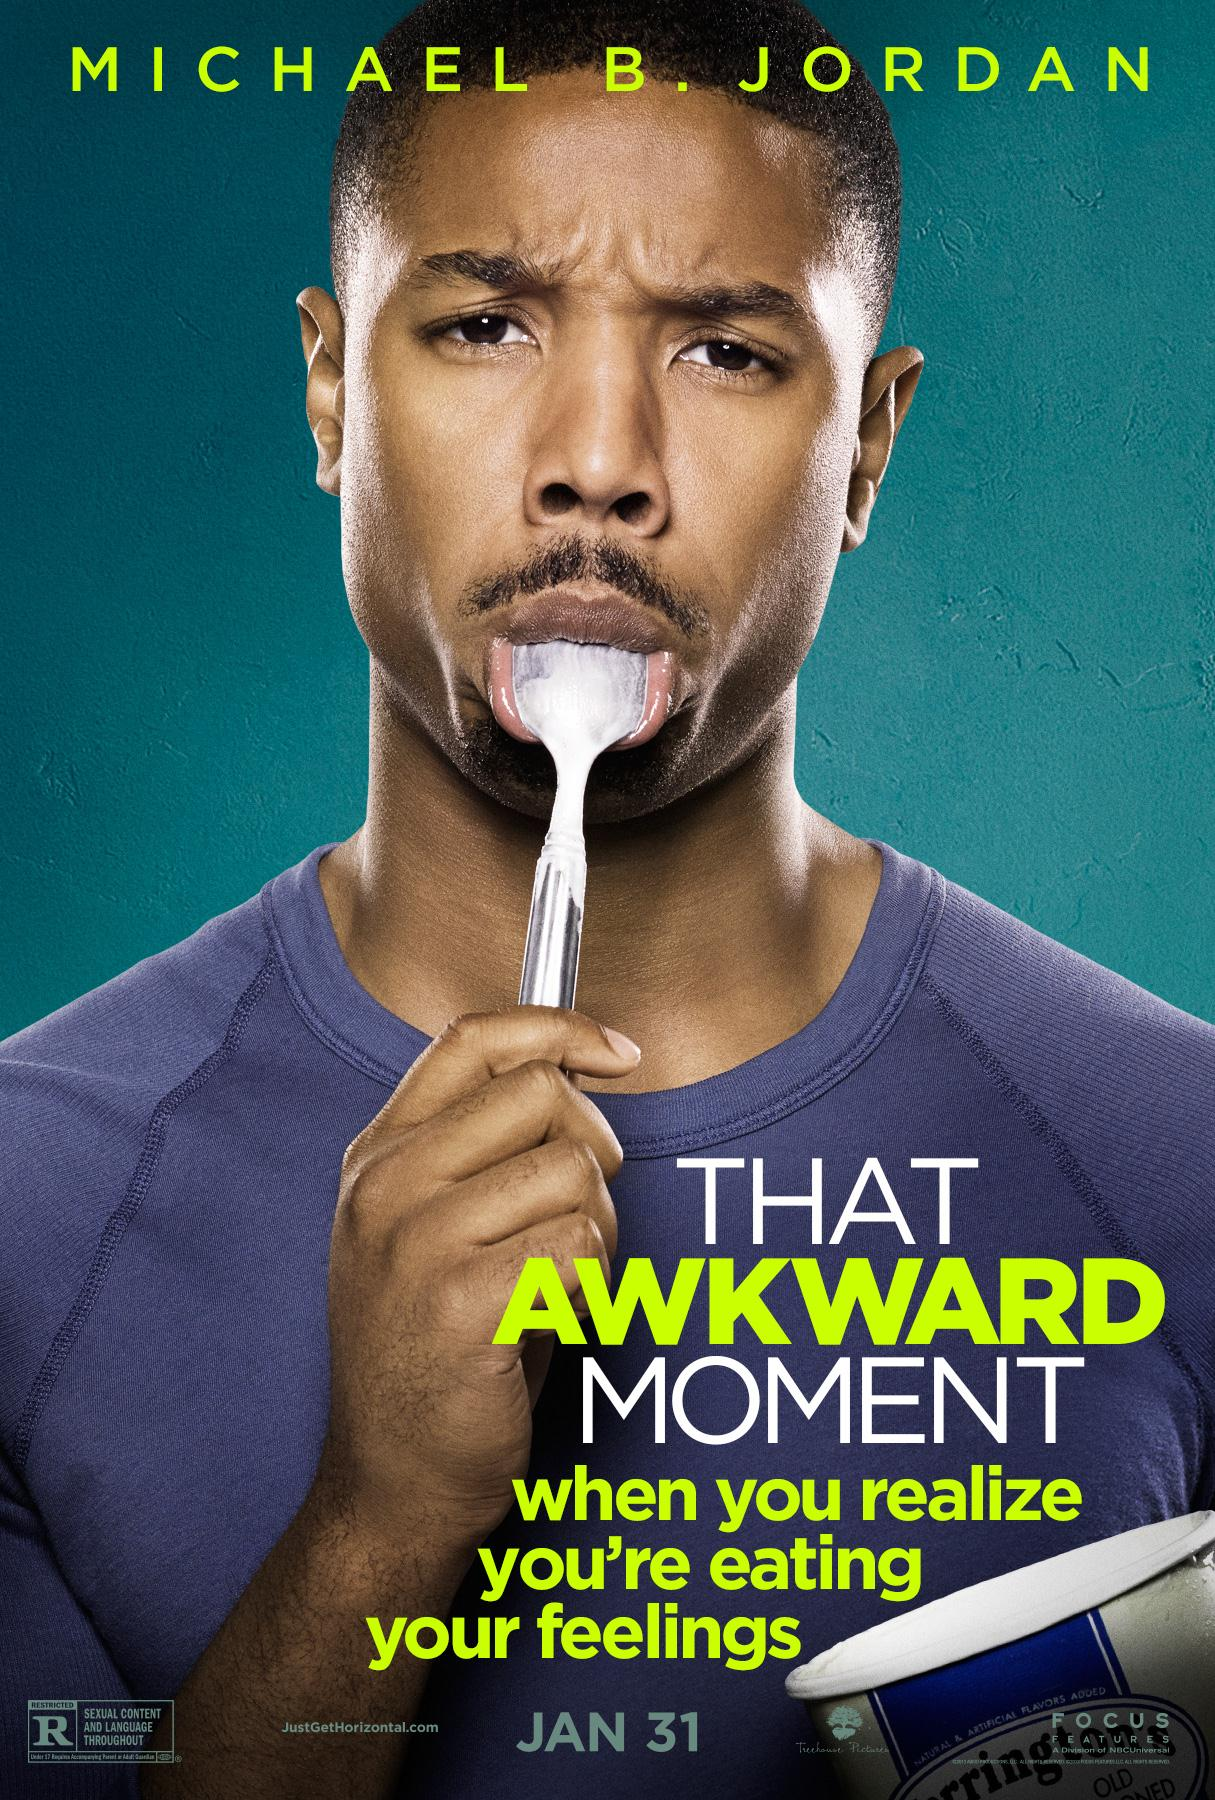 ARE OnlineMichael RGB W1 Red Band Trailer and Posters for That Awkward Moment Finds Humor in Dating Pitfalls